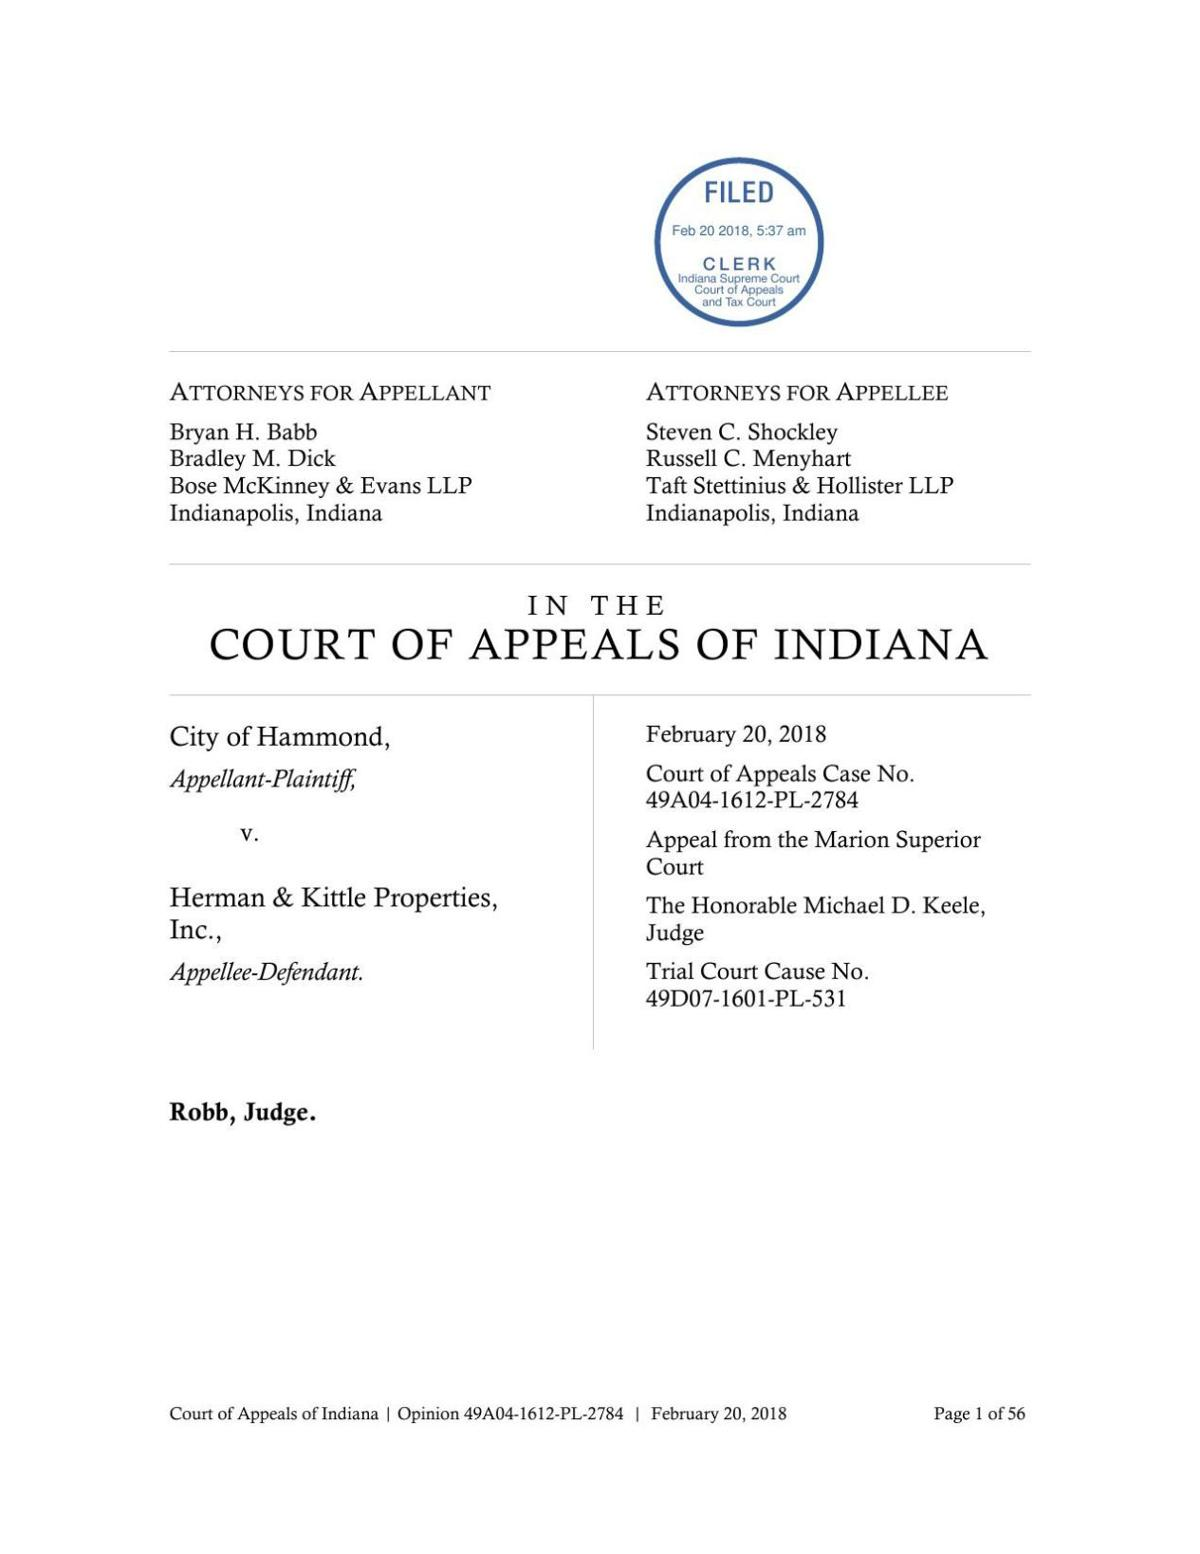 Hammond v. Herman and Kittle ruling of Indiana Court of Appeals